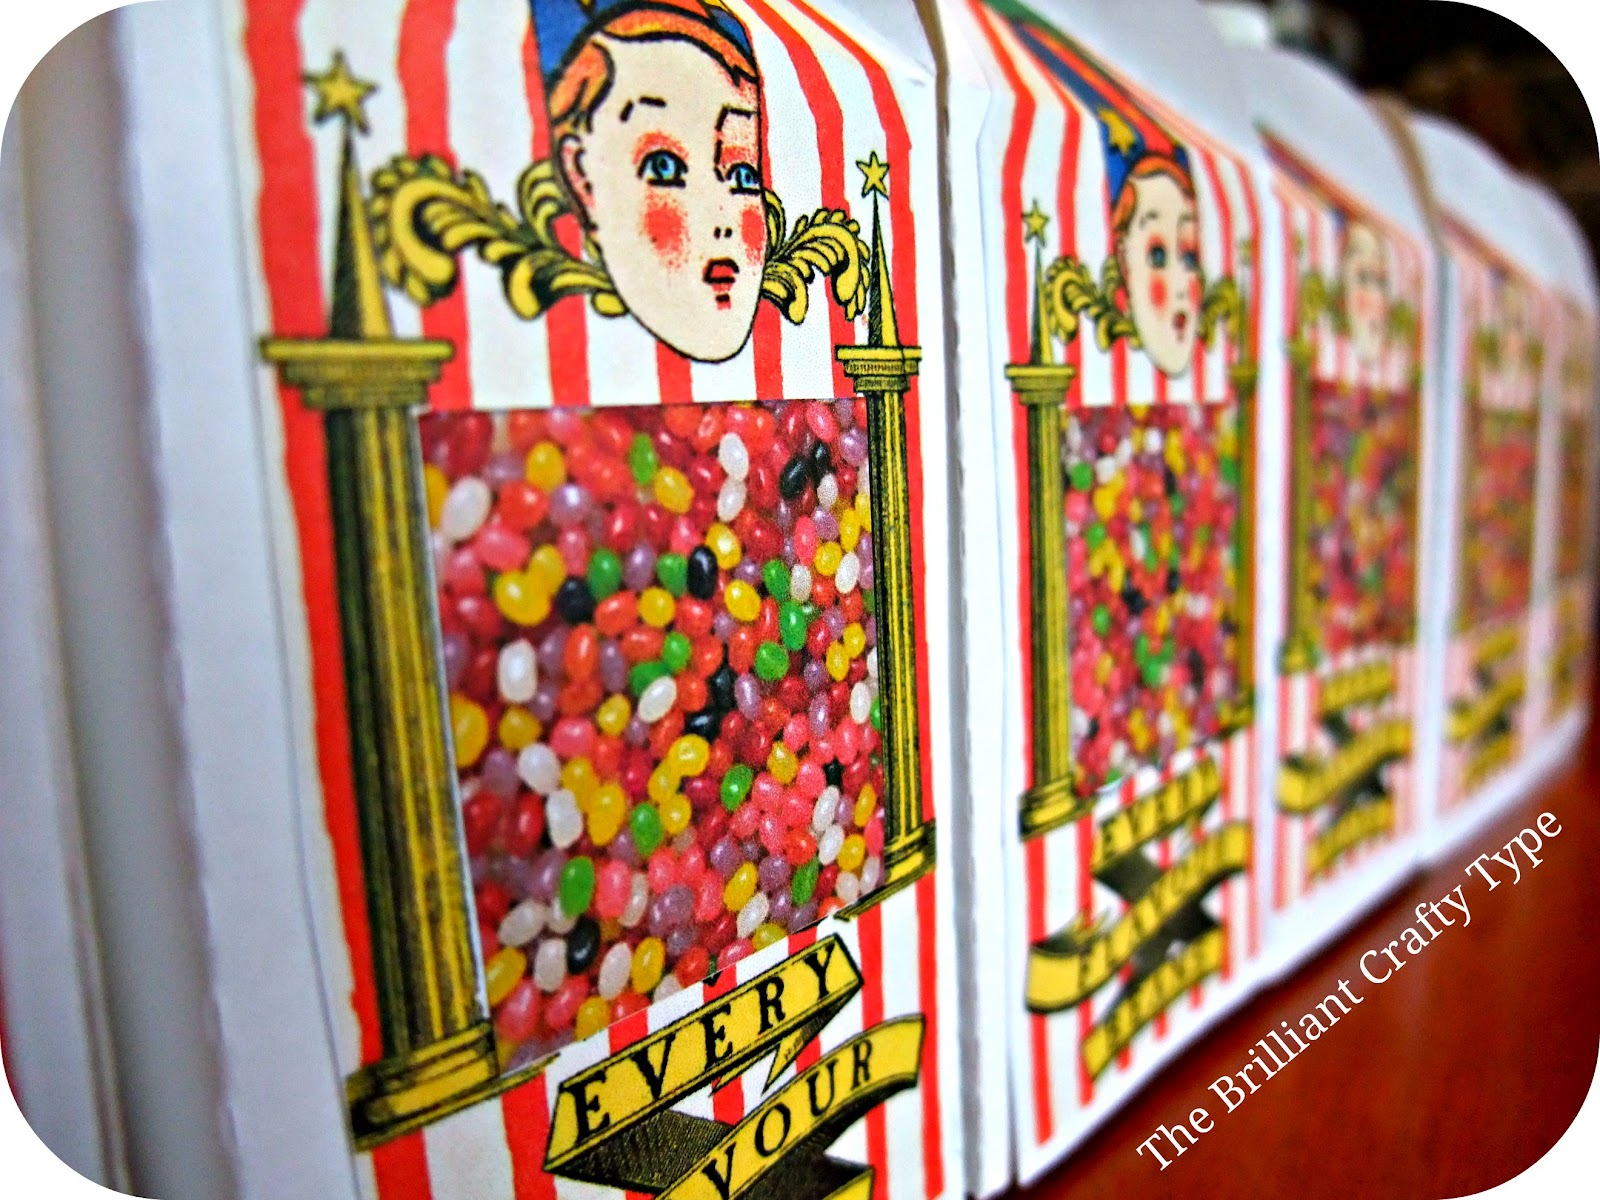 photo about Bertie Botts Every Flavor Beans Printable named The Outstanding Cunning Style: Bertie Botts Each Flavour Beans